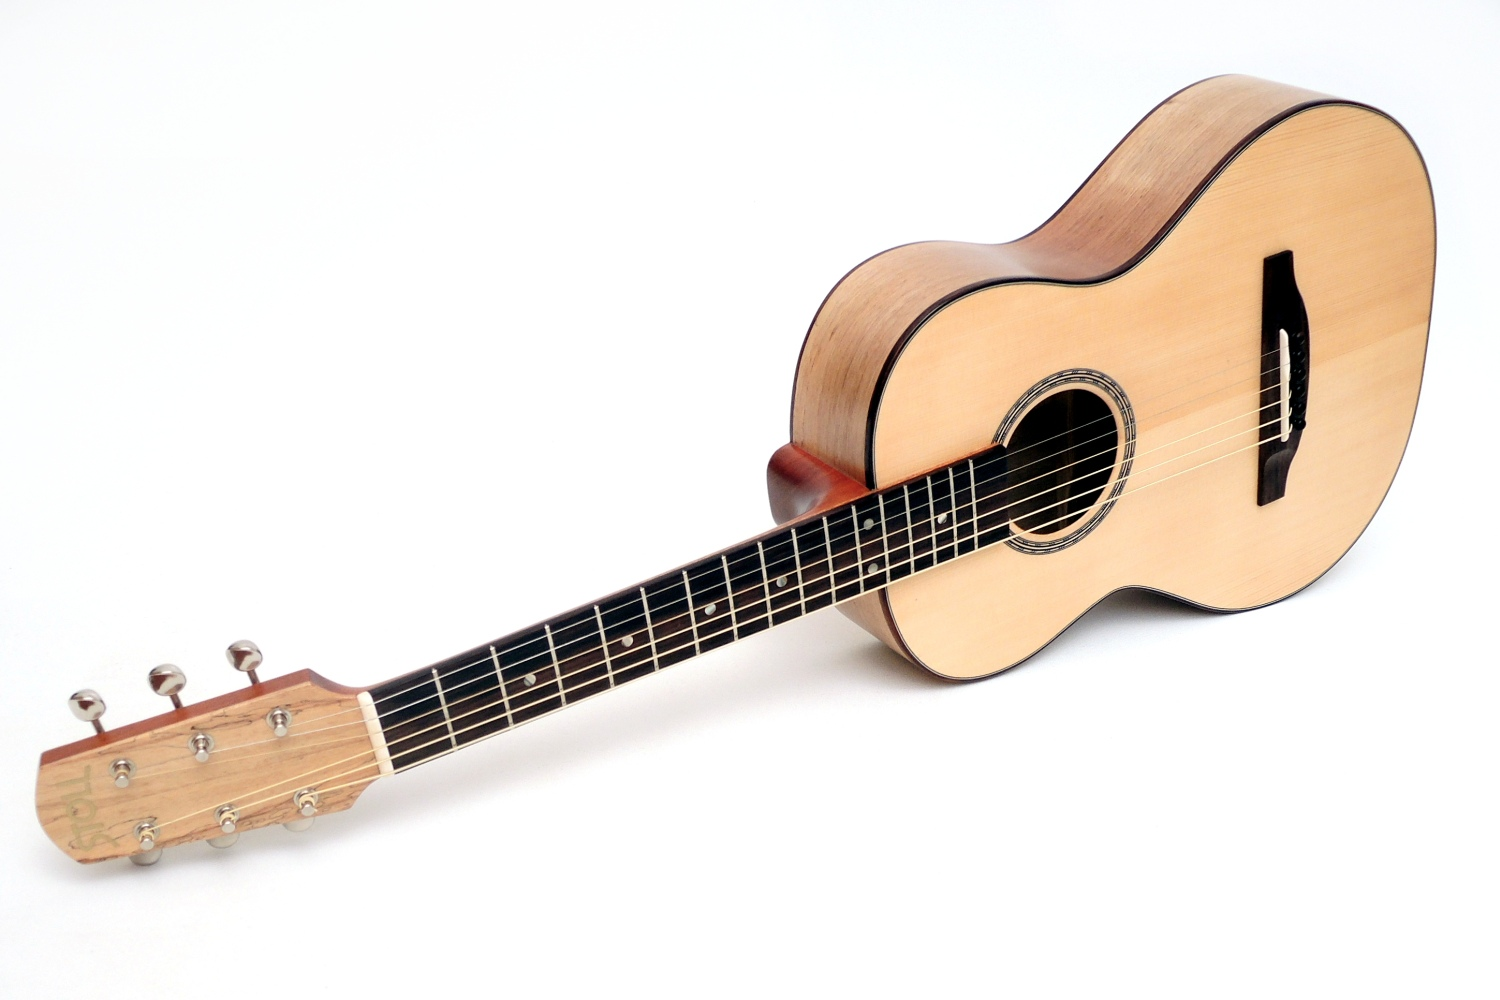 Travel Guitar Acoustic Travel Guitar with Scale Length 55.5